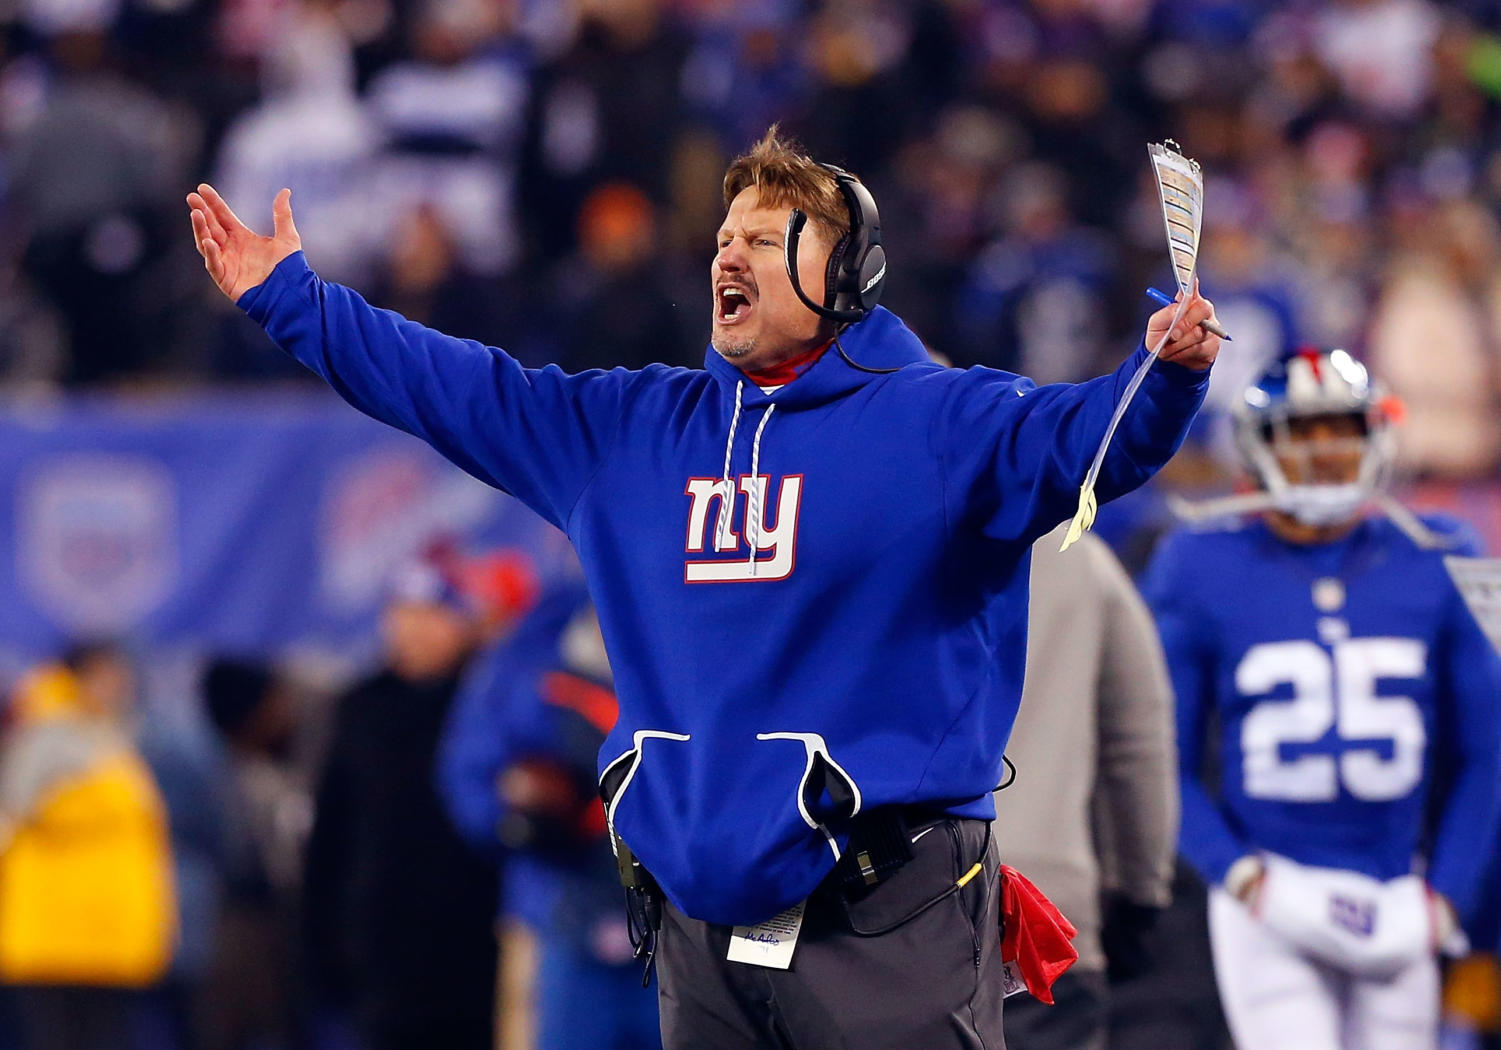 EAST RUTHERFORD, NJ - DECEMBER 11:  (NEW YORK DAILIES OUT)   Head coach Ben McAdoo of the New York Giants reacts during a game against the Dallas Cowboys on December 11, 2016 at MetLife Stadium in East Rutherford, New Jersey. The Giants defeated the Cowboys 10-7.  (Photo by Jim McIsaac/Getty Images)